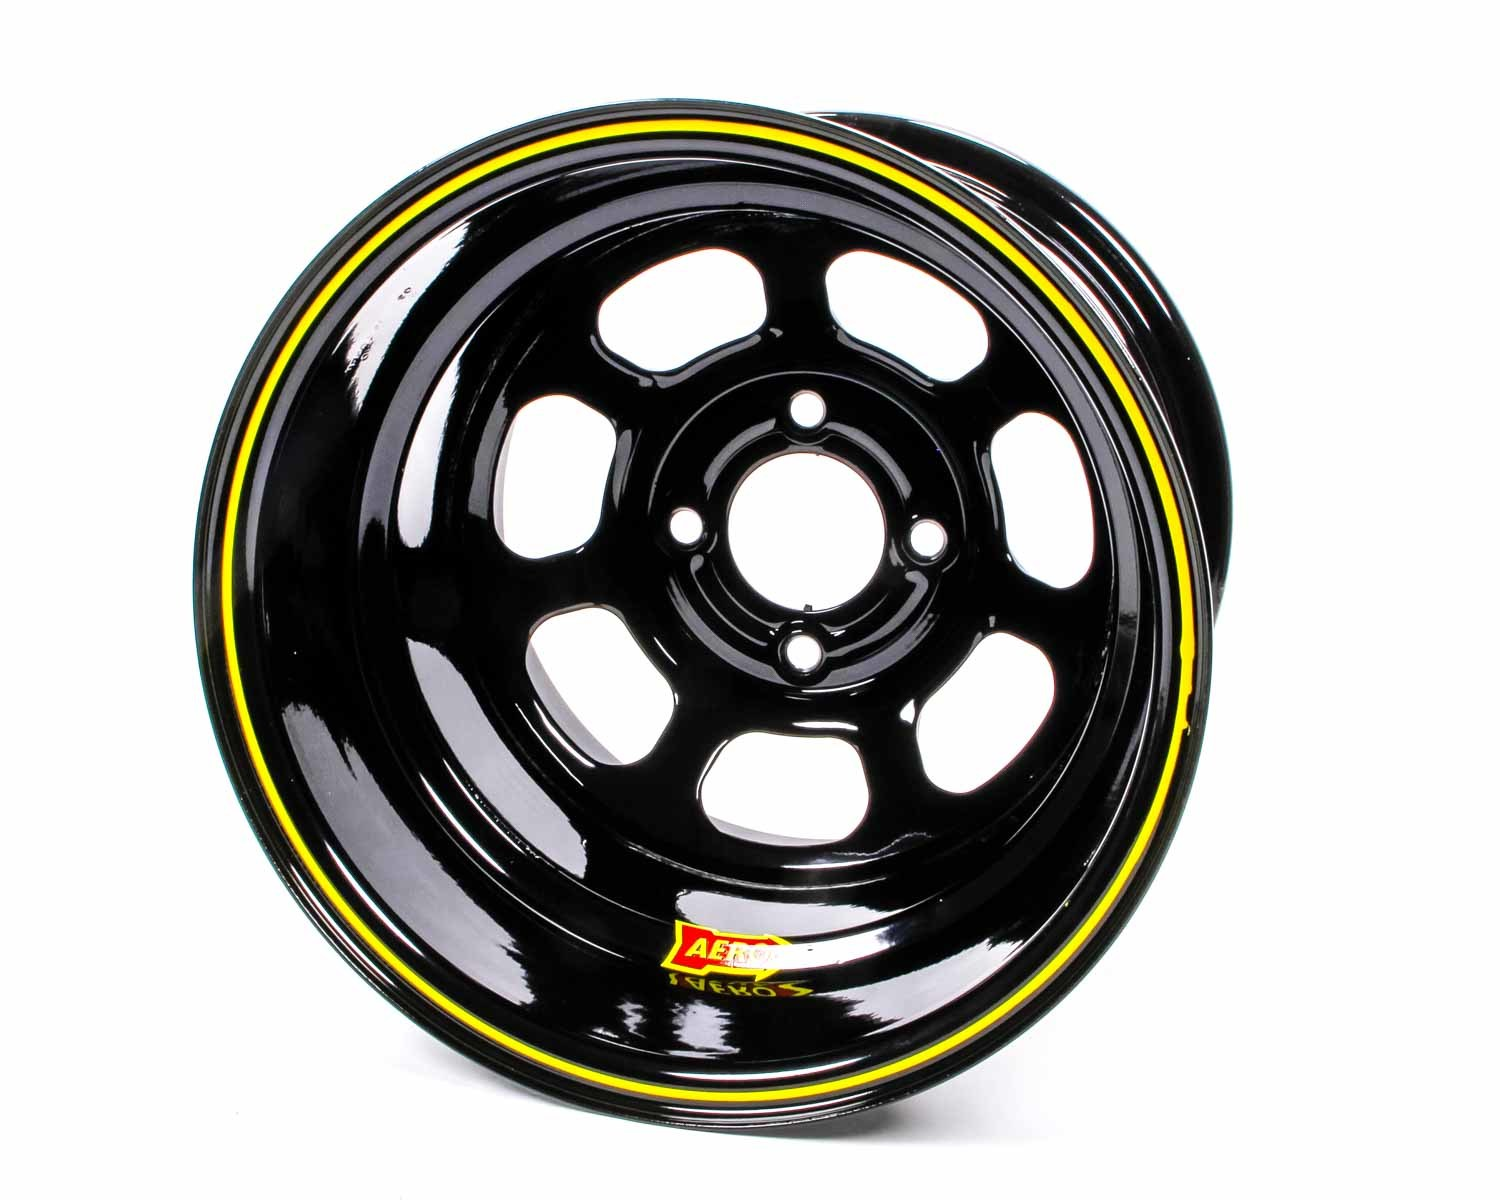 Aero Race 13x8 3in. 4.25 Black  Wheel